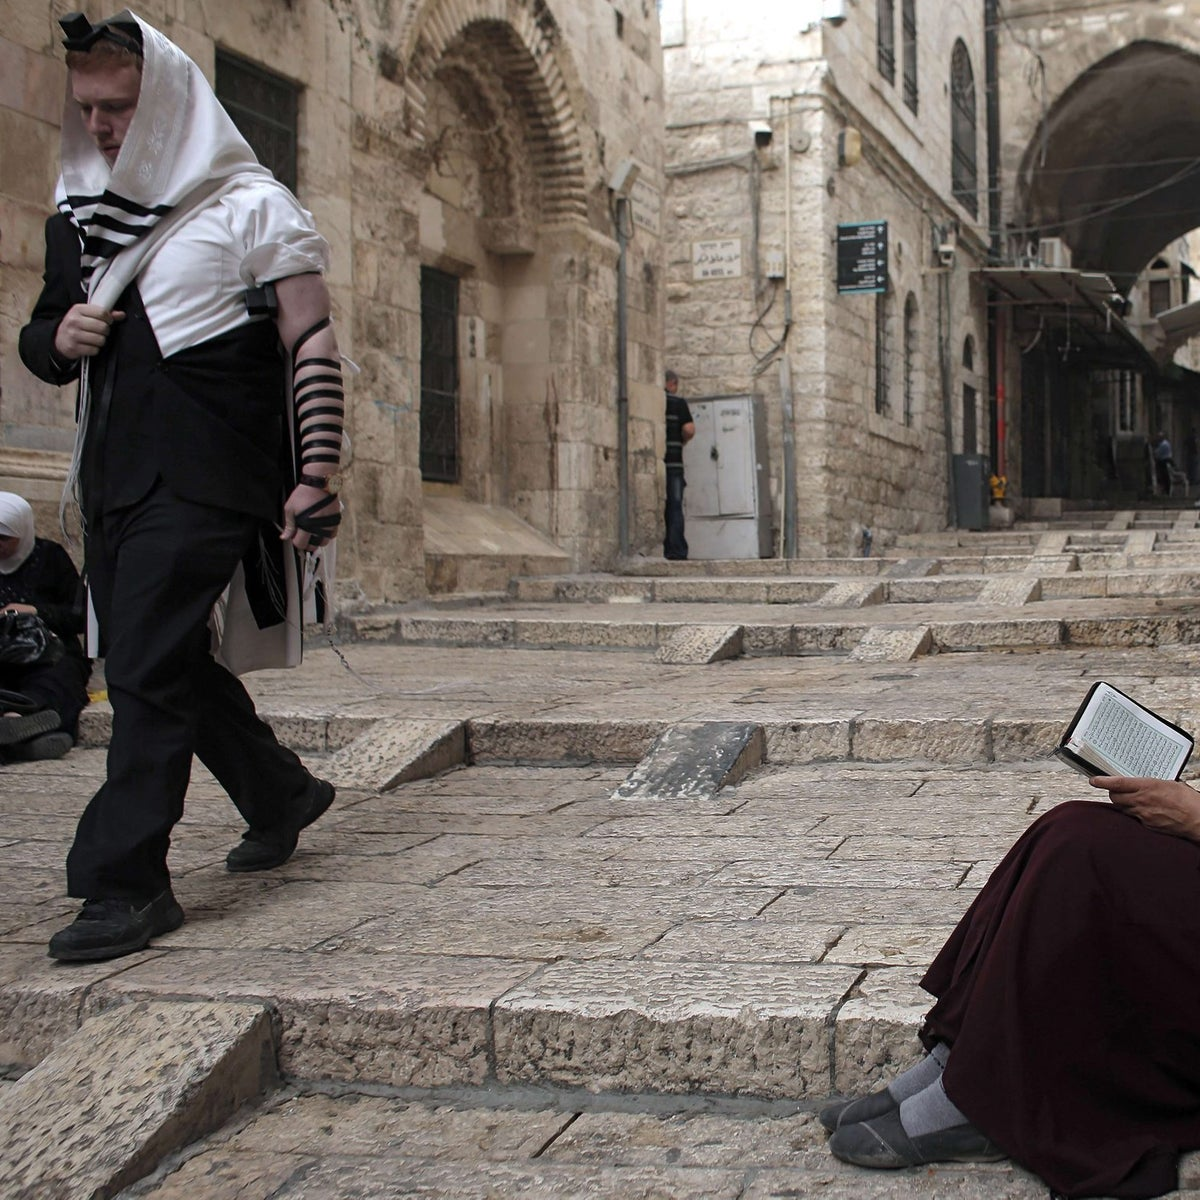 A Palestinian woman reads a copy of the Koran, Islam's holy book, as a Jewish Orthodox man walks past her in Jerusalem's Old City on September 10, 2015.